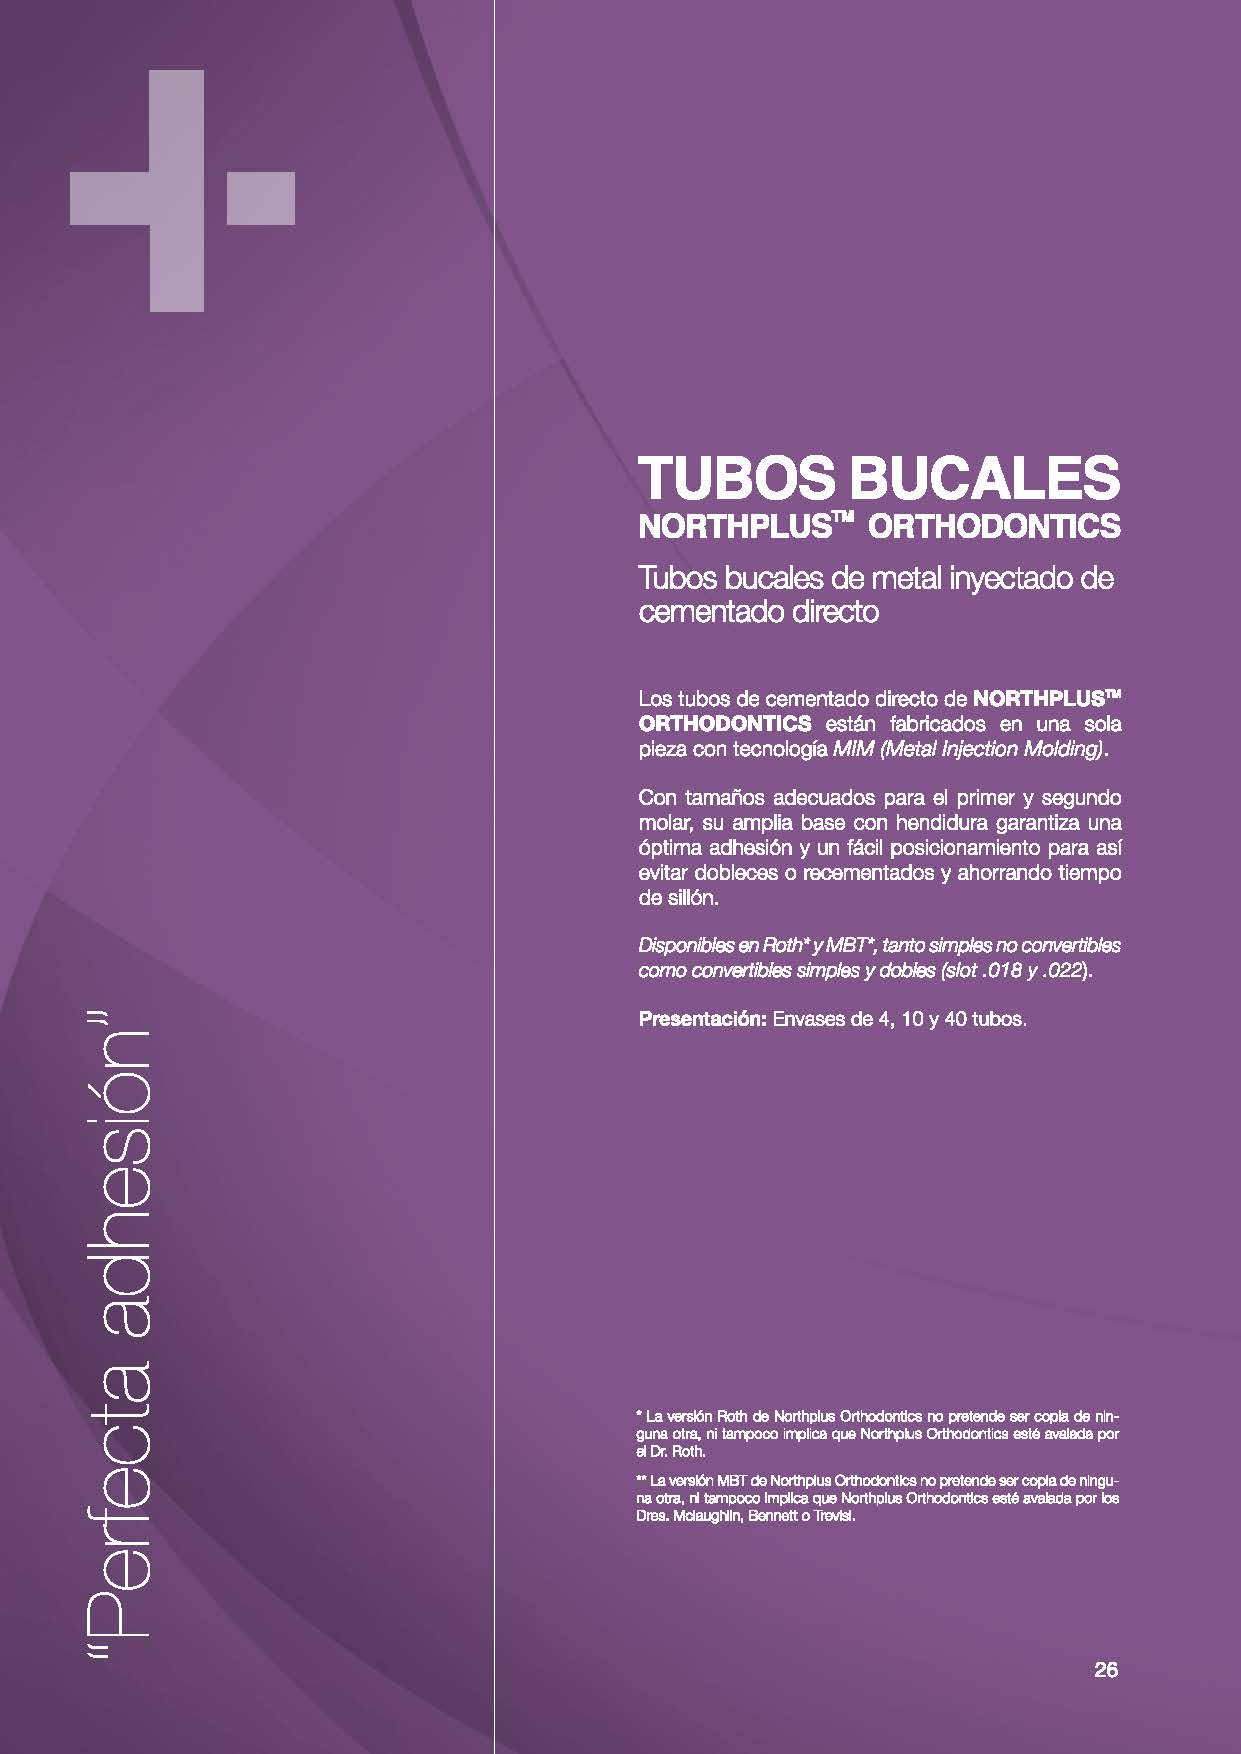 TUBOS BUCALES NORTHPLUS ORTHODONTICS